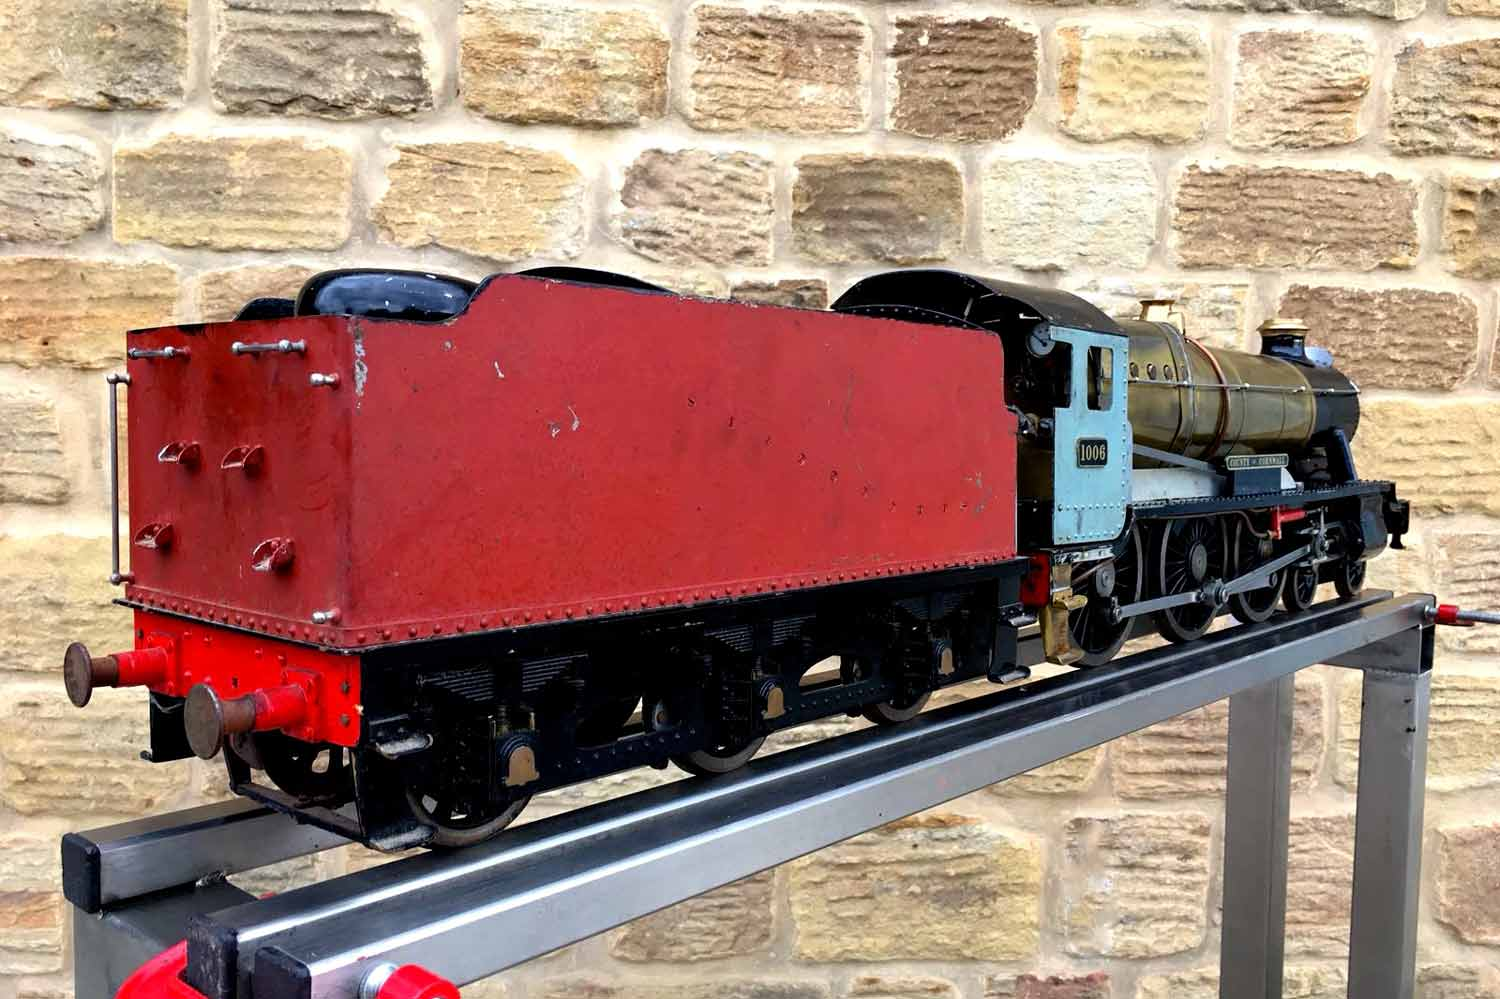 test 3-and-a-half-inch-gauge-GWR-County-Hawksworth-live-steam-locomotive-for-sale-15